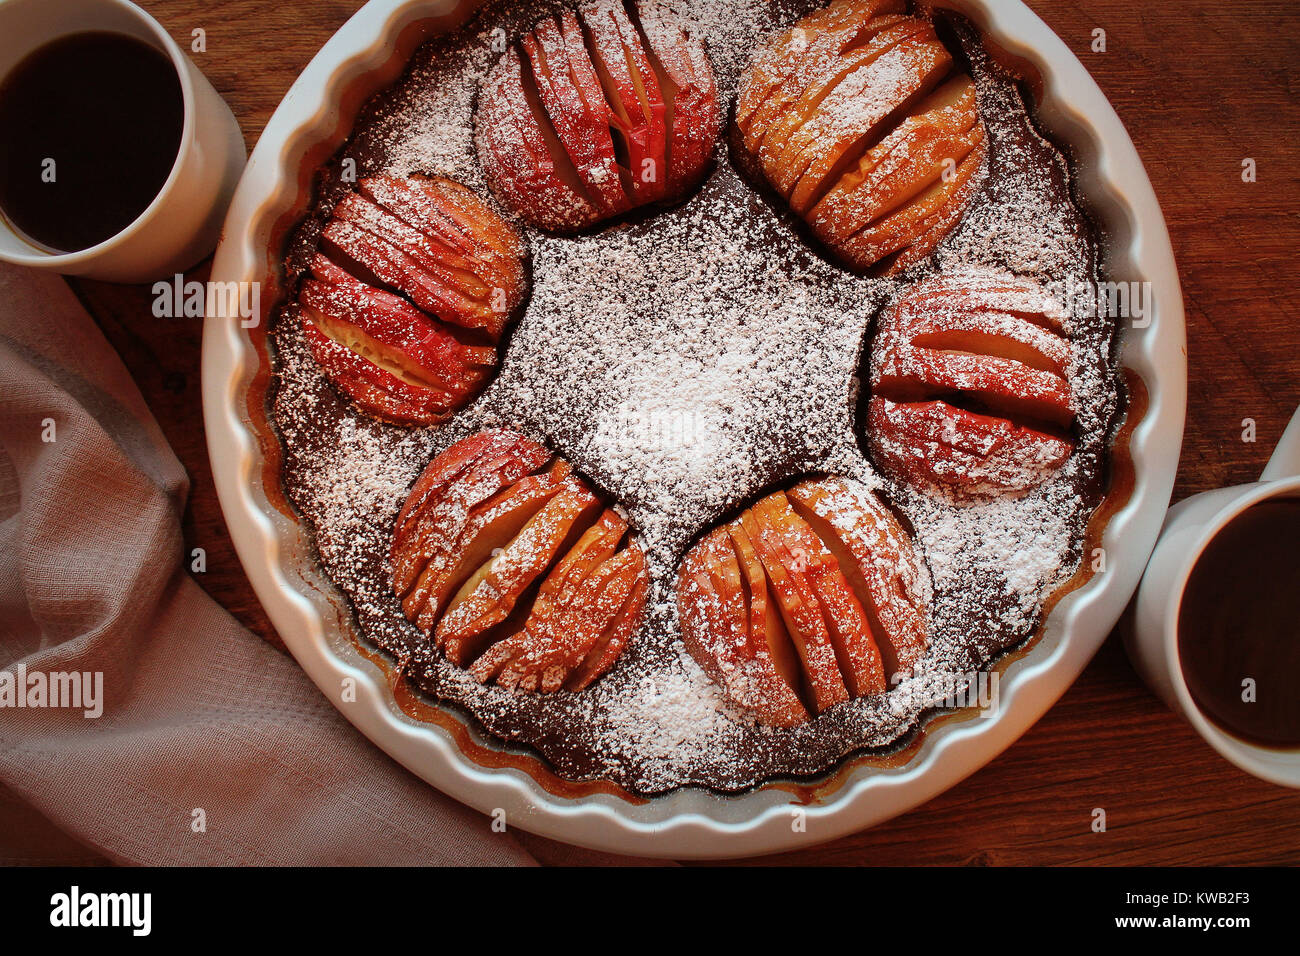 Apple pie, fruit dessert, tart on wooden rustic table. Top view, christmas background - Stock Image